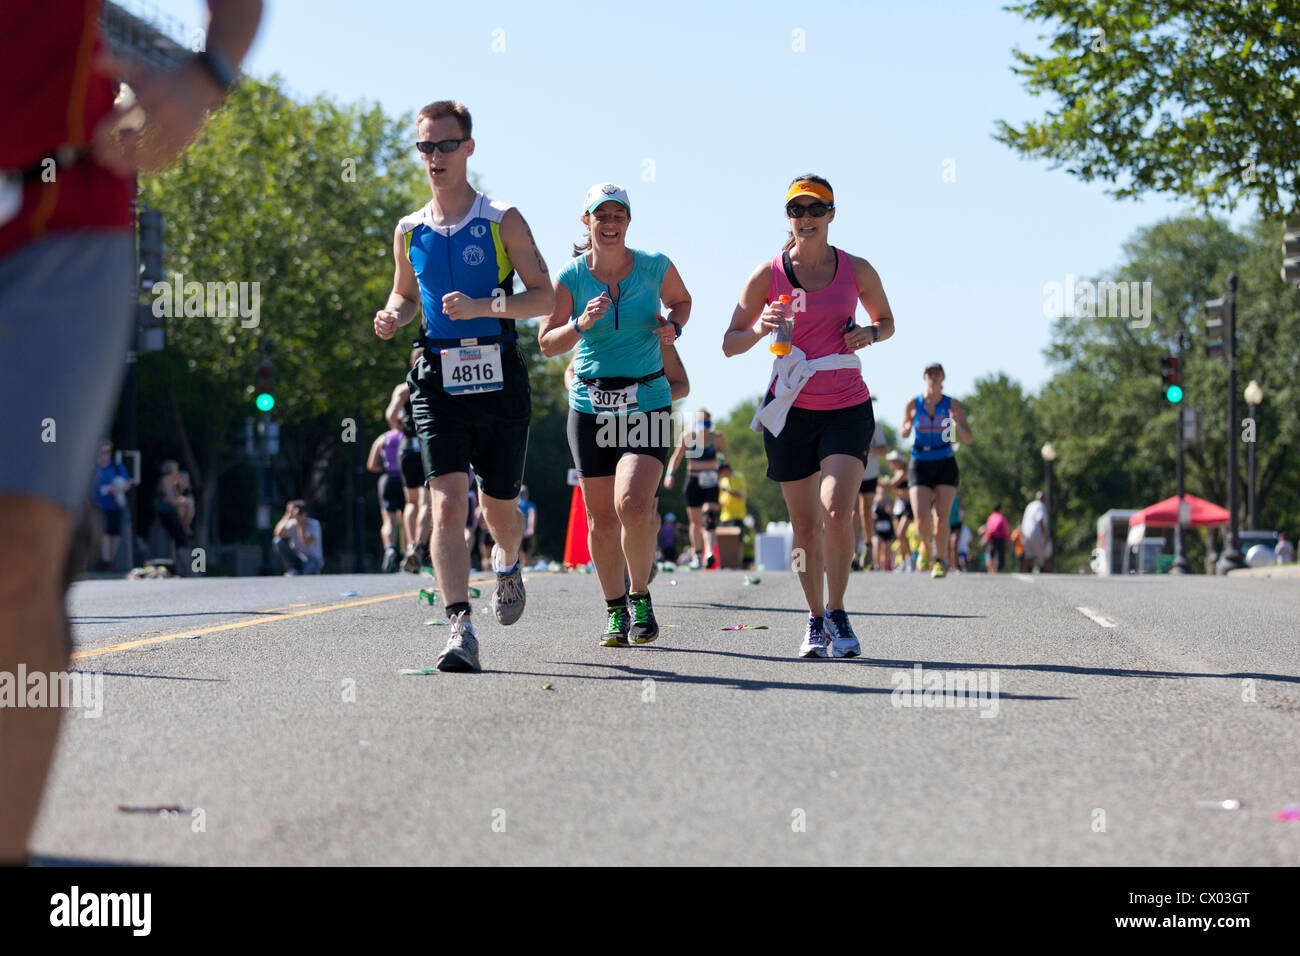 Runners in a marathon - Stock Image